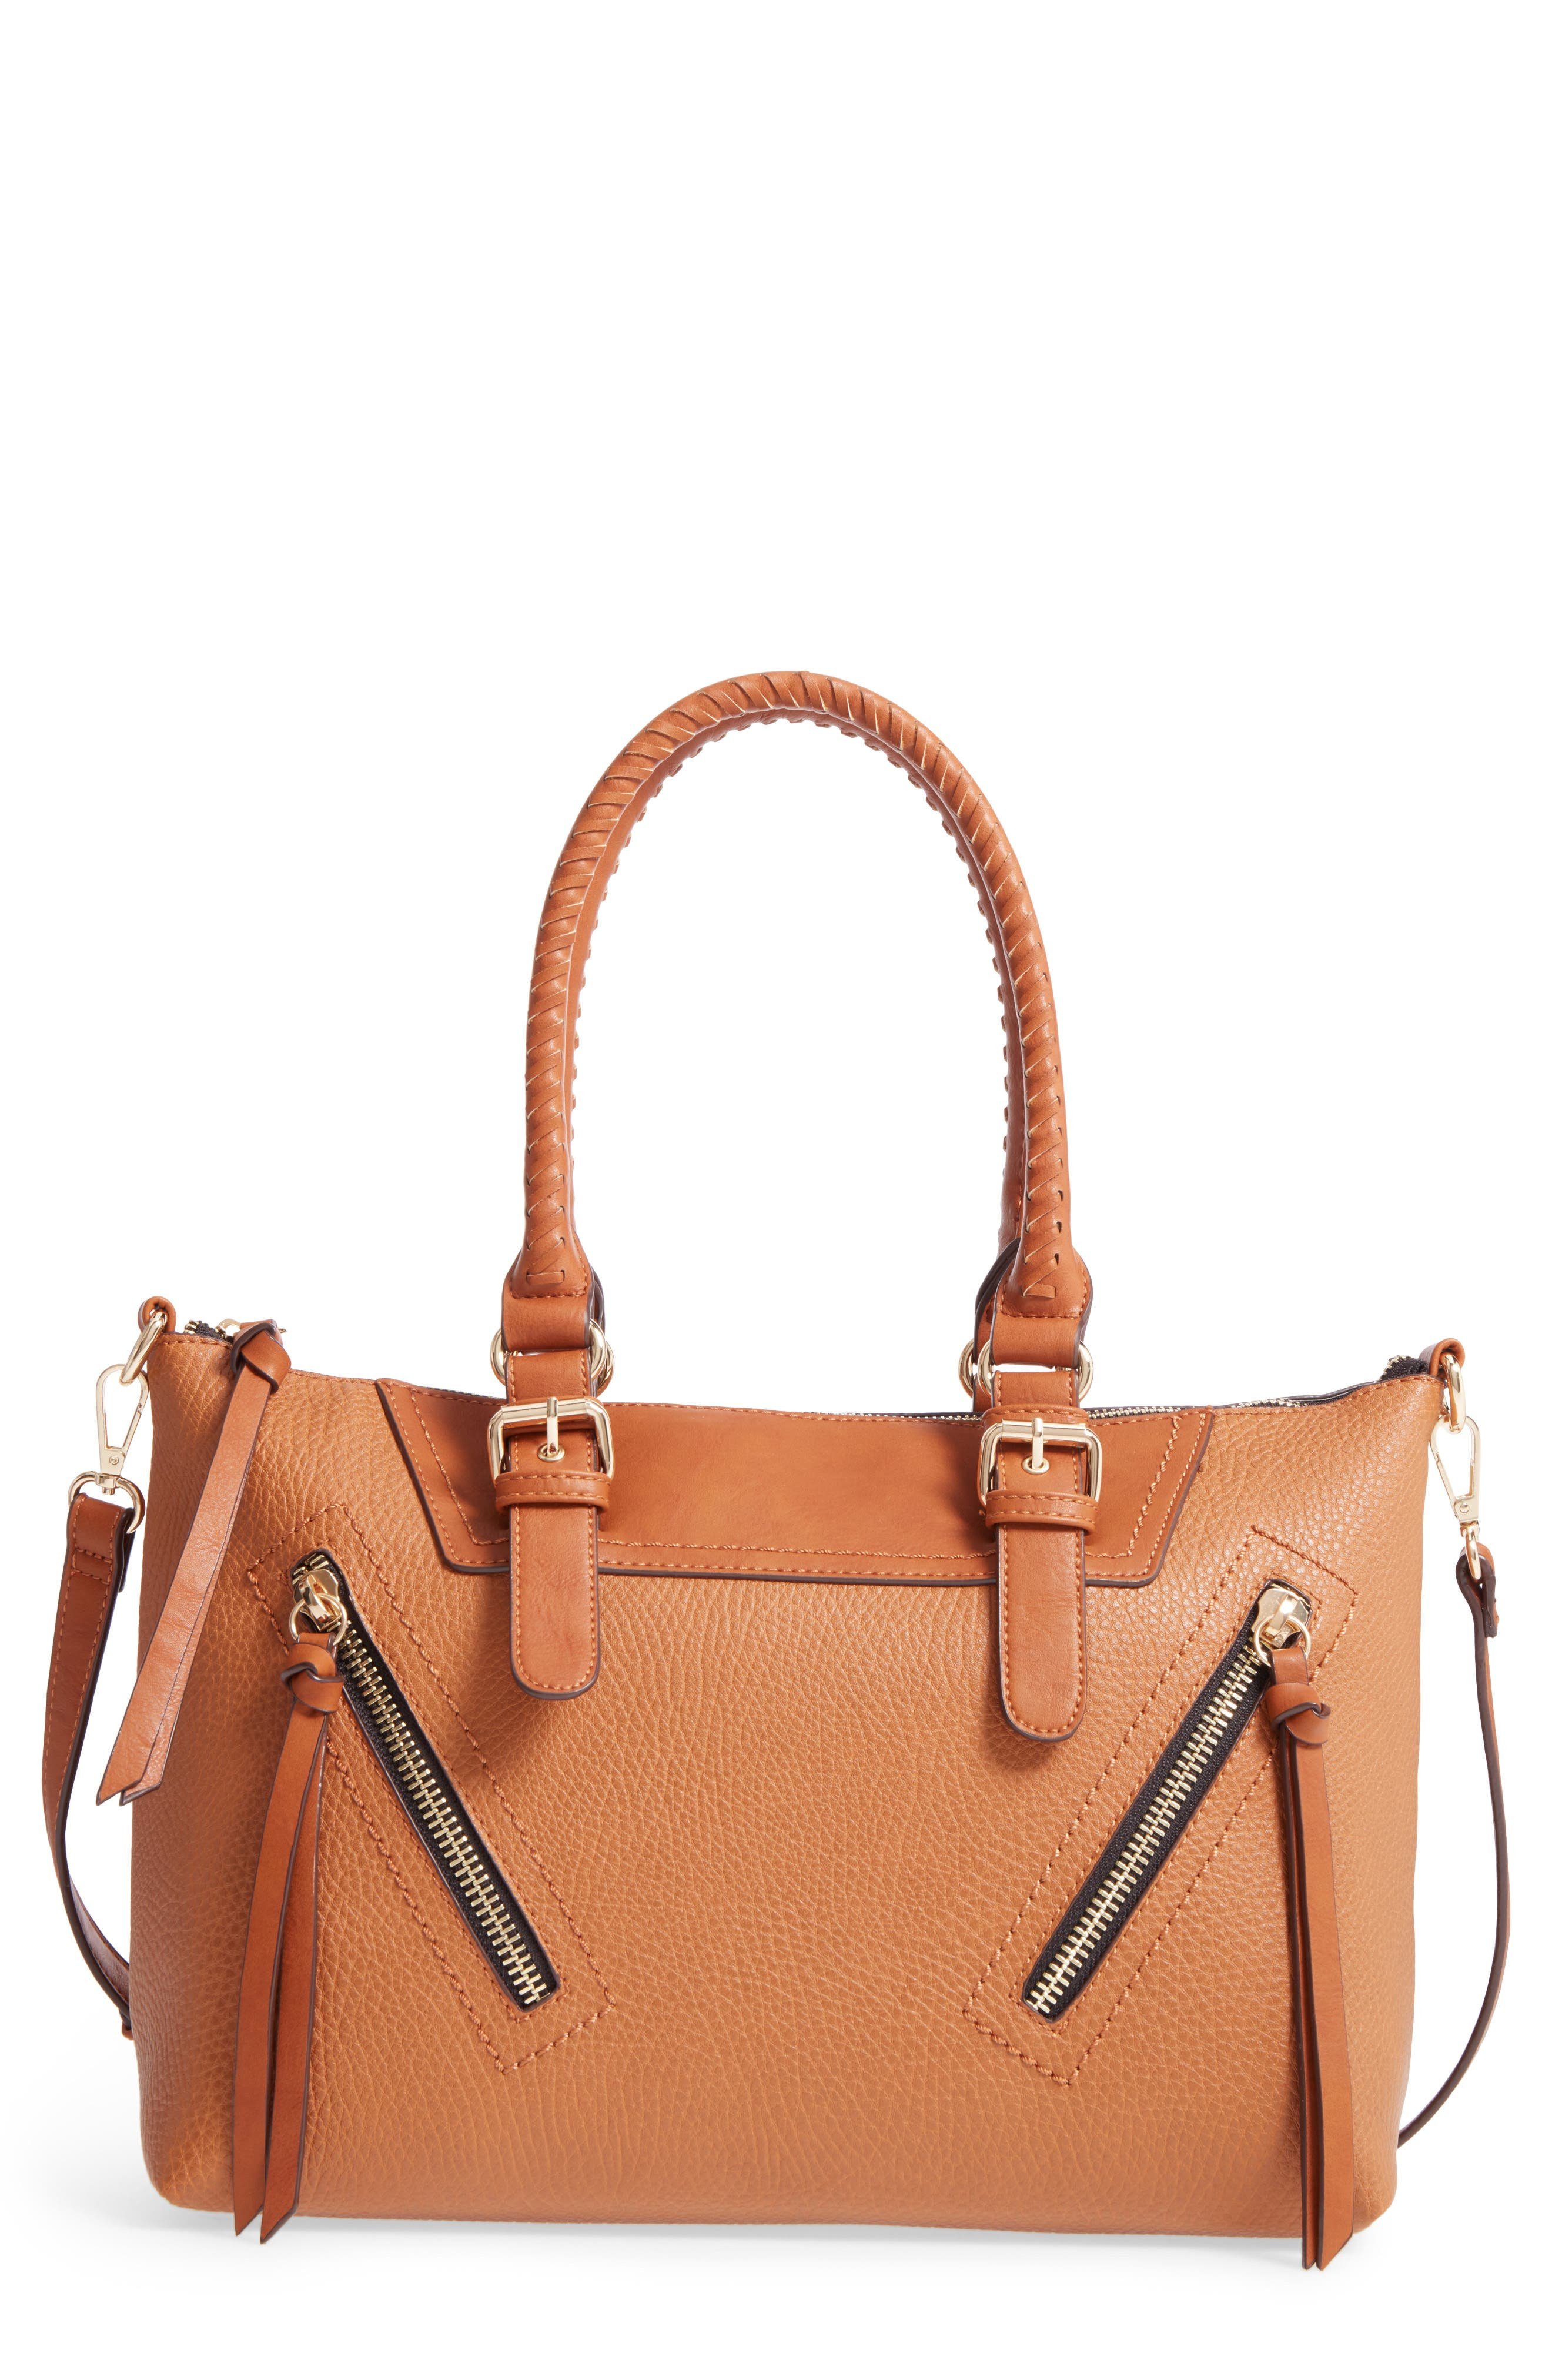 Main Image - Sole Society Girard Faux Leather Satchel